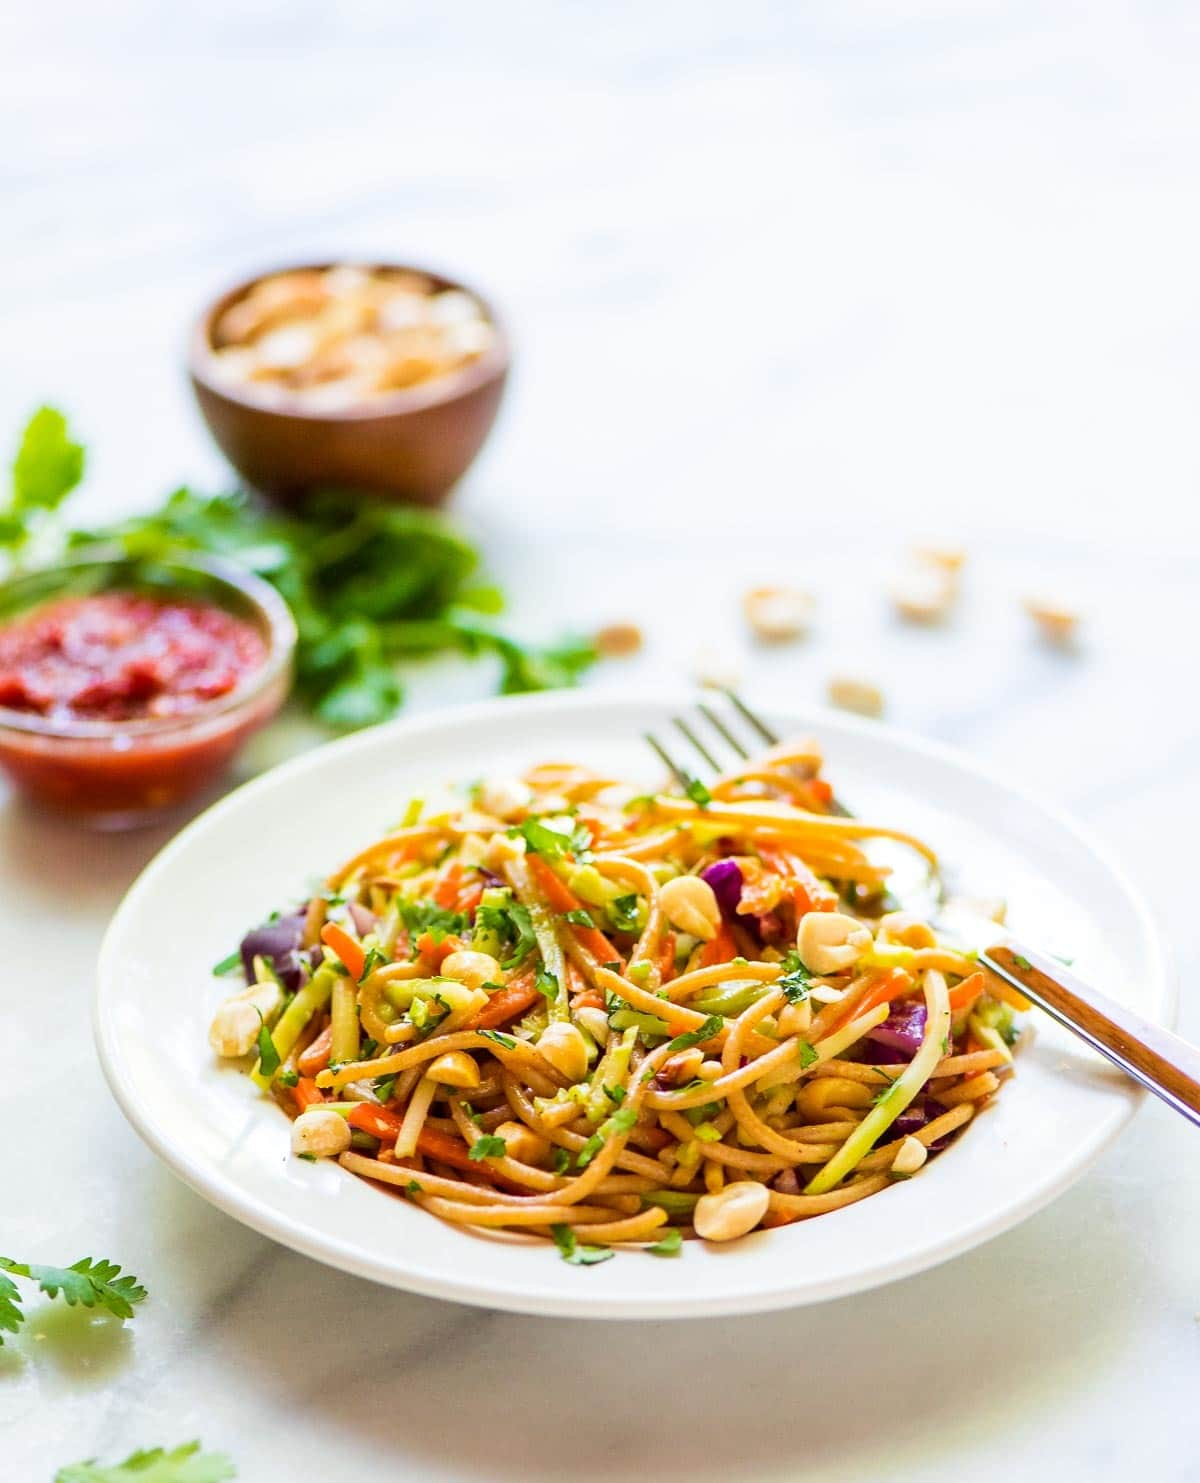 Asian Noodle Salad with Peanut Dressing. AMAZING cold pasta salad. Quick and easy, lightened up from the original, and everyone always asks for the recipe! Great for a cookout side dish or add chicken to make it a full meal. @wellplated